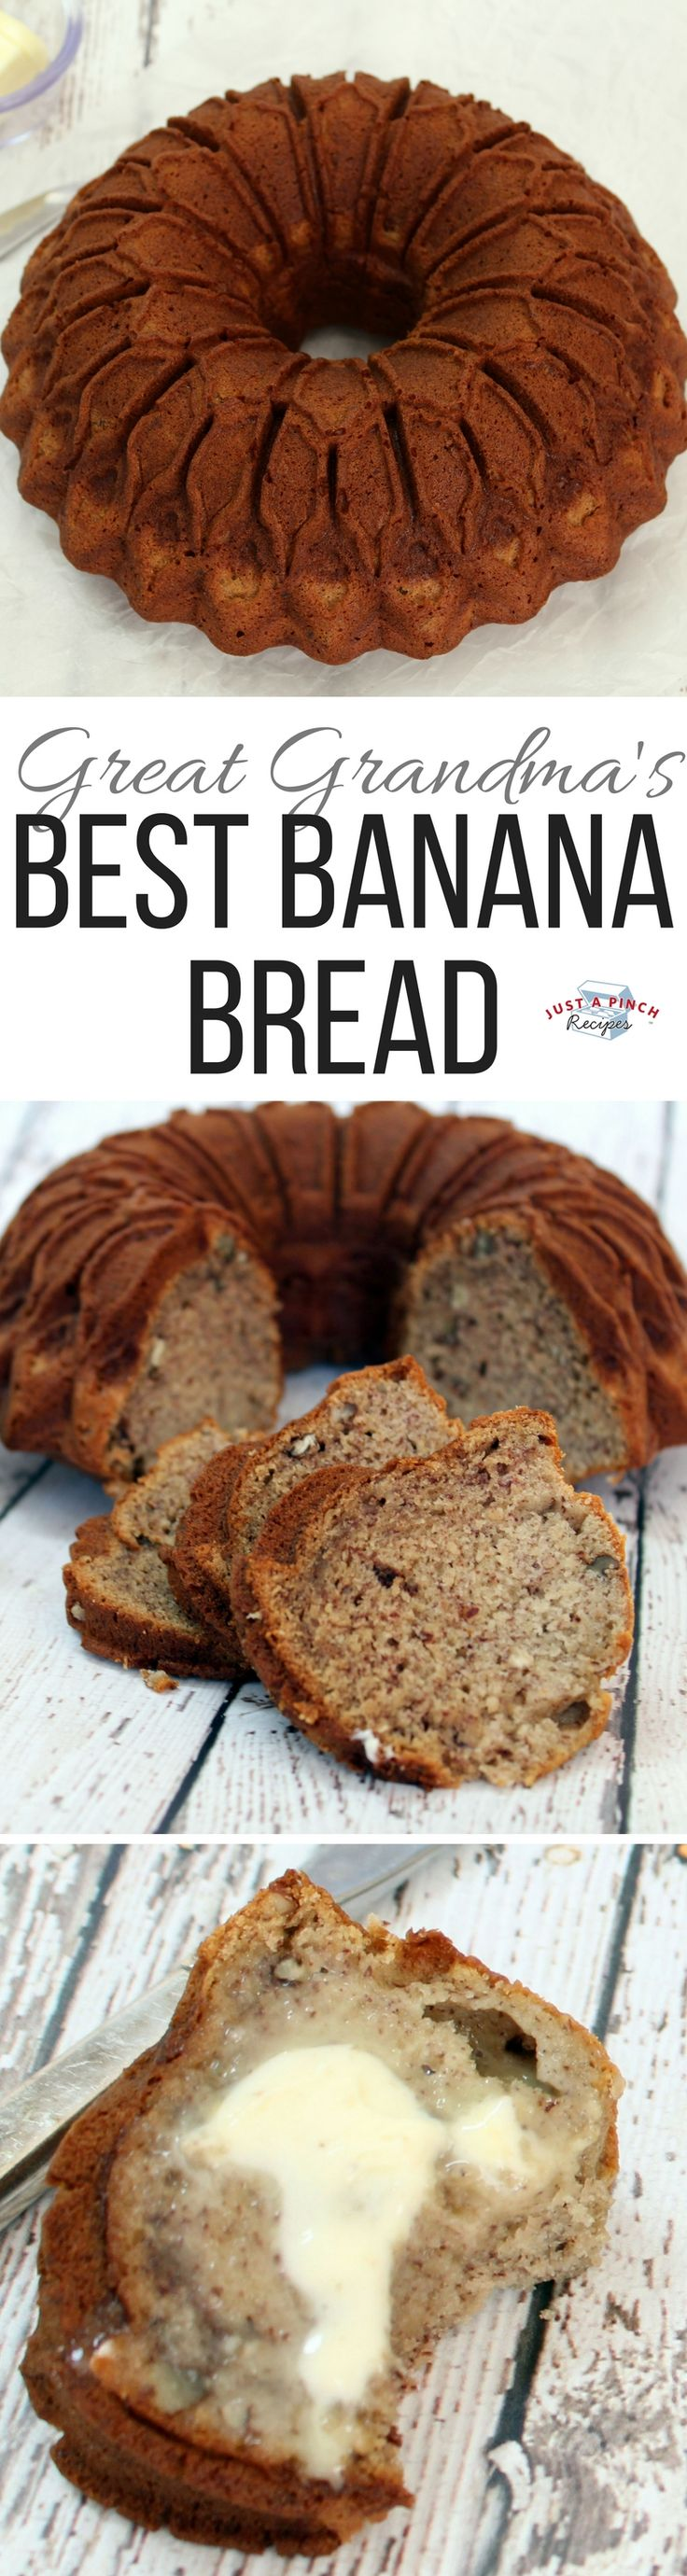 This banana bread is easy, moist, delicious and full of banana flavor. I like the idea of using a bundt pan.